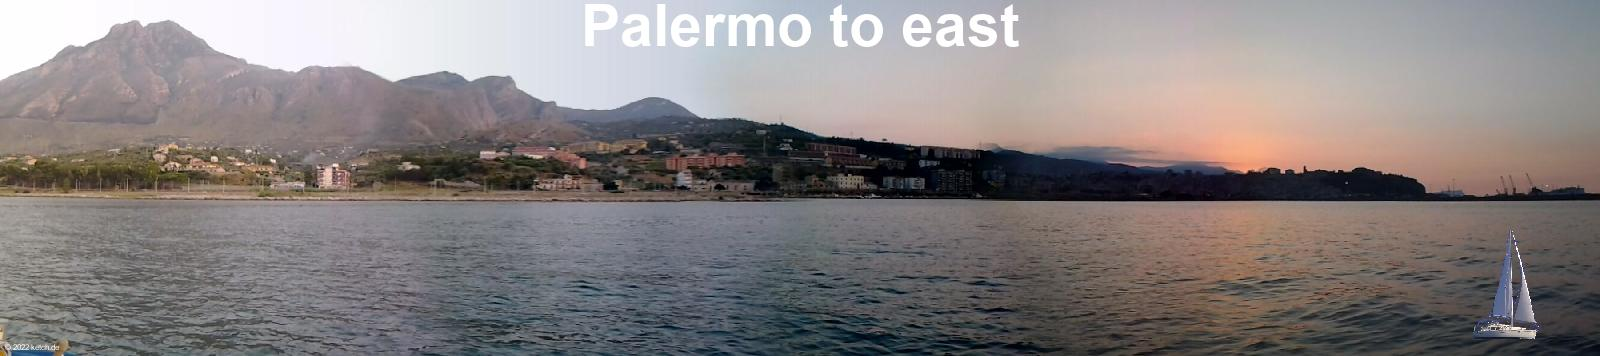 Palermo to east